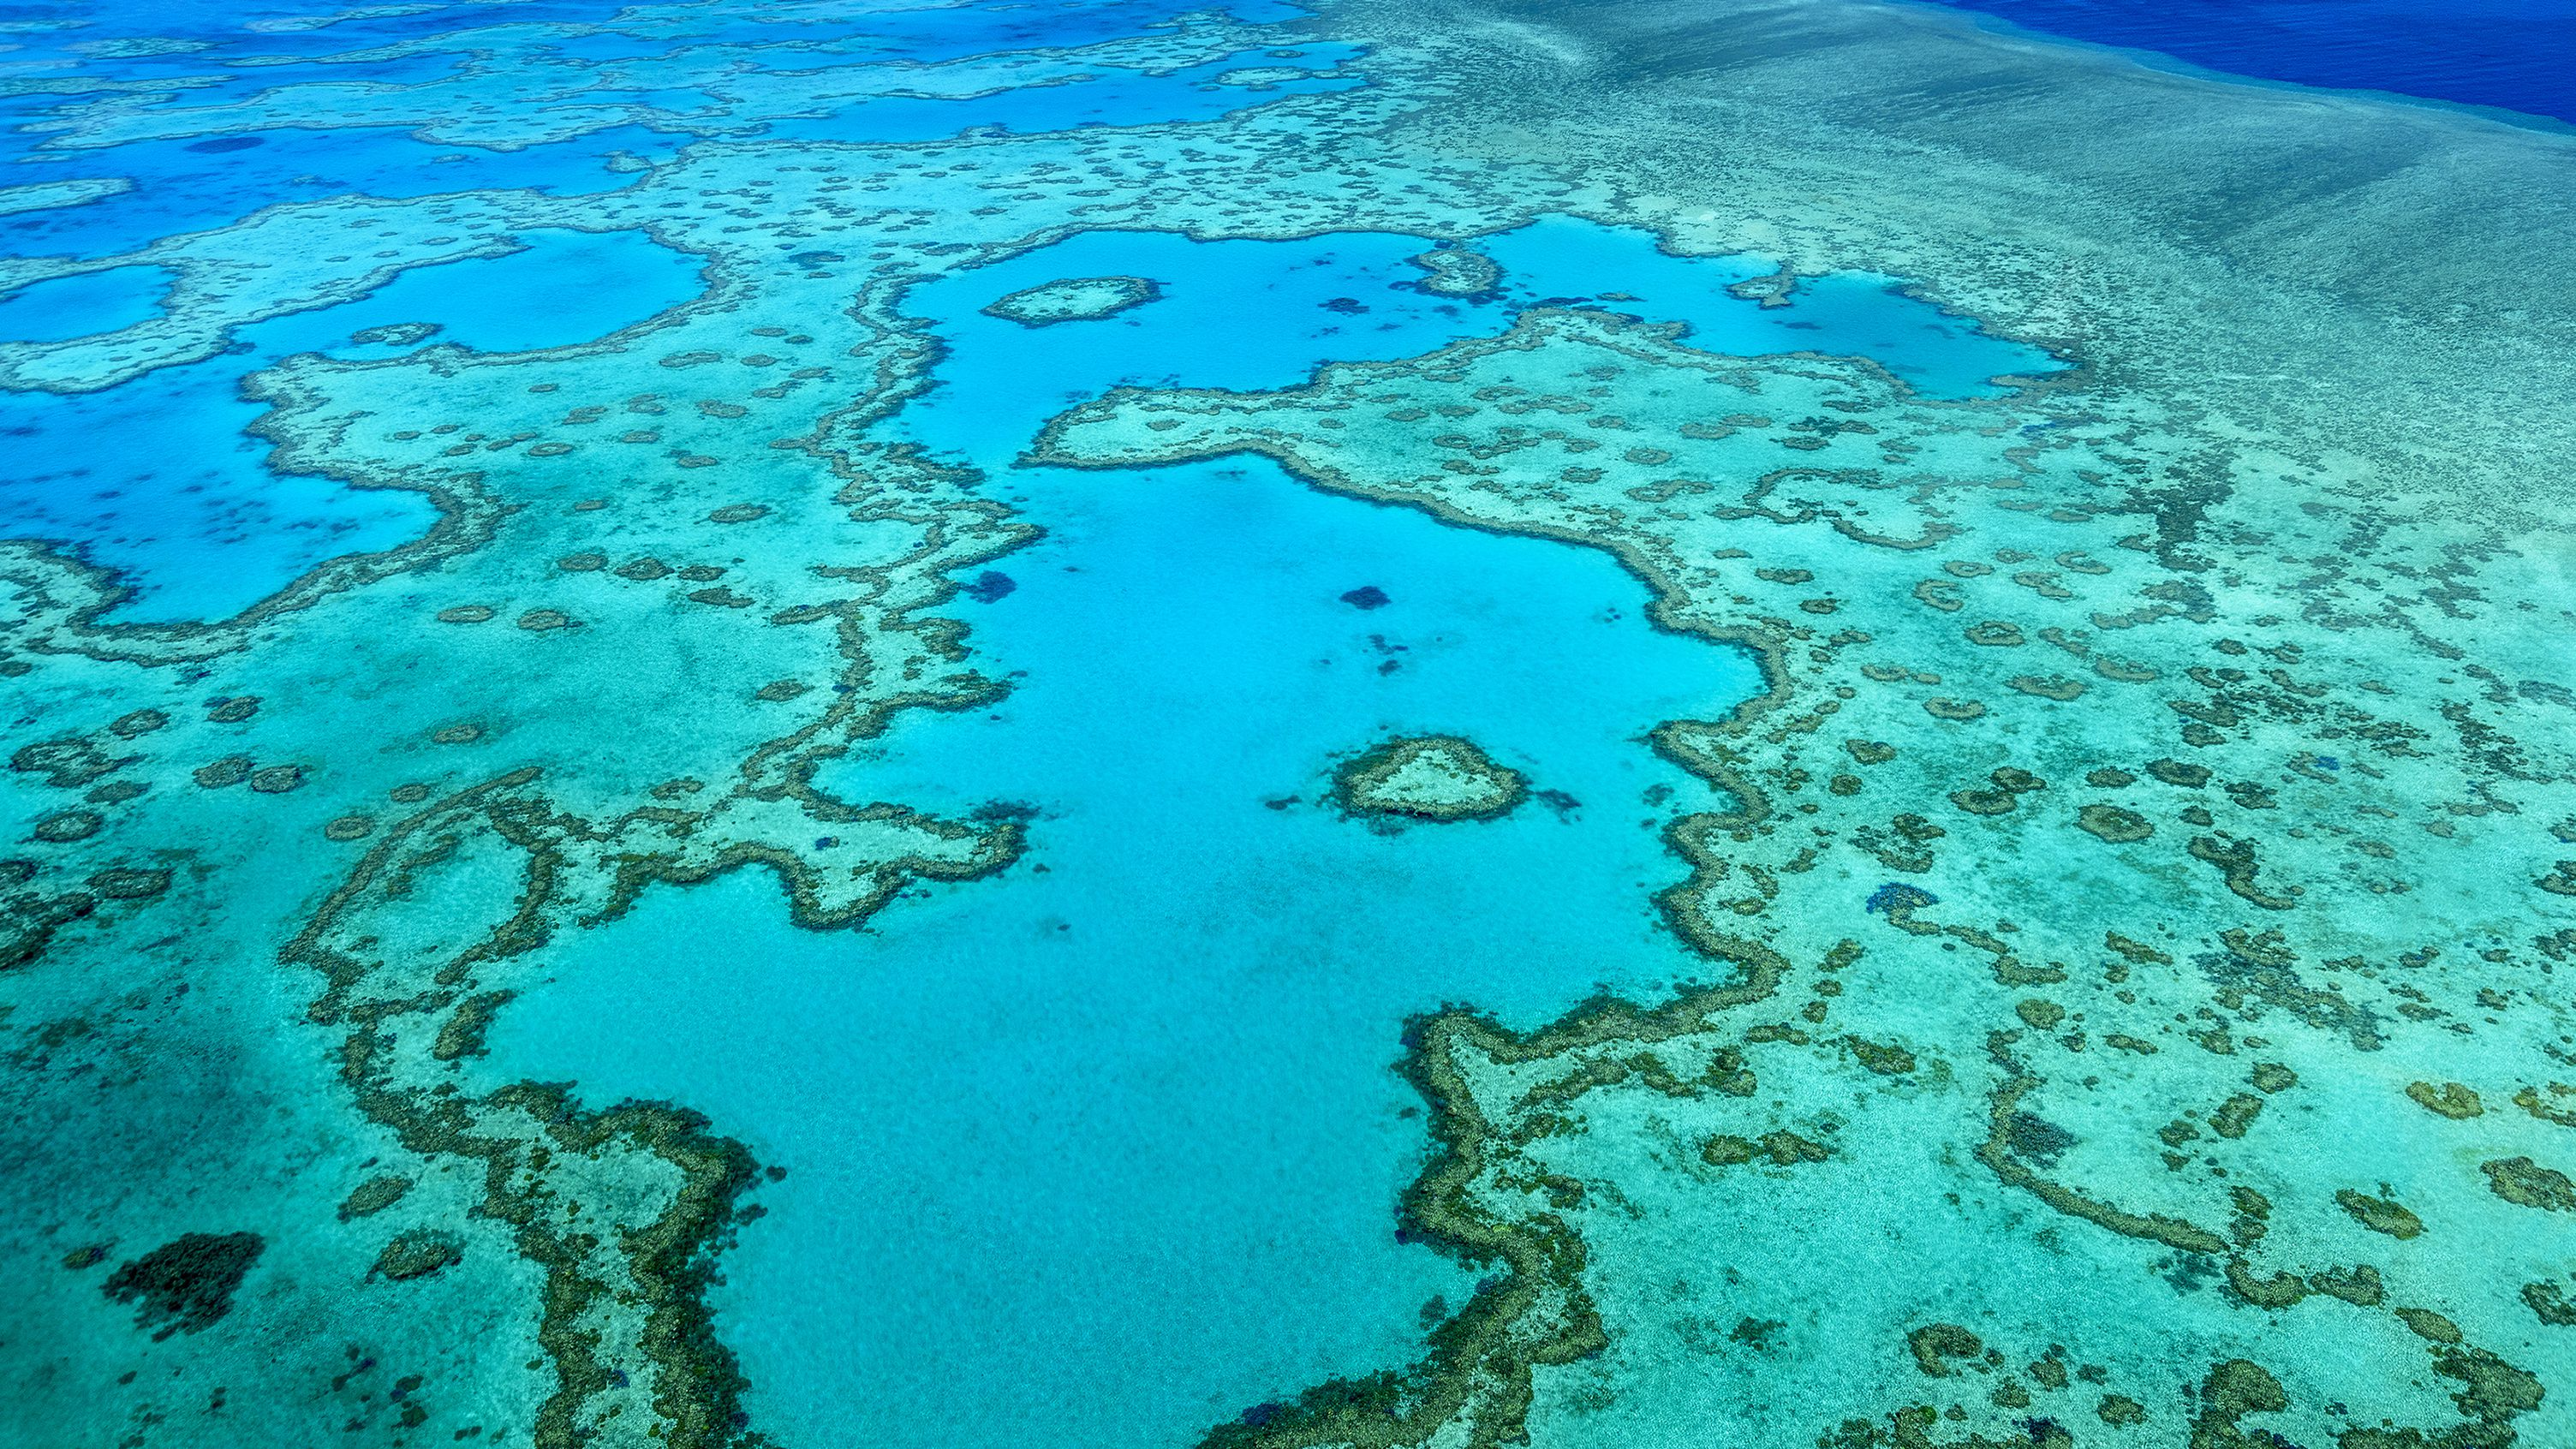 The Great Barrier Reef Has Lost Half Of Its Corals Over The Past 25 Years